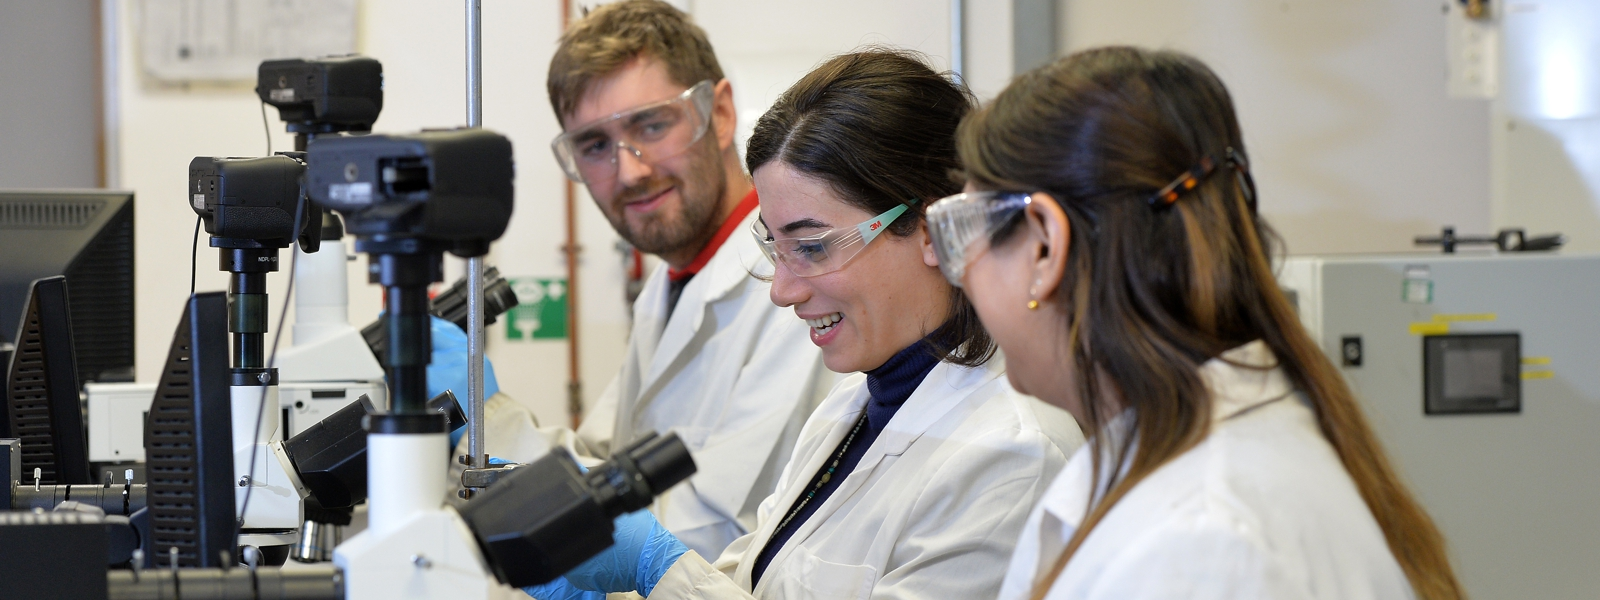 three postgraduate research students smile and work in a lab wearing lab coats